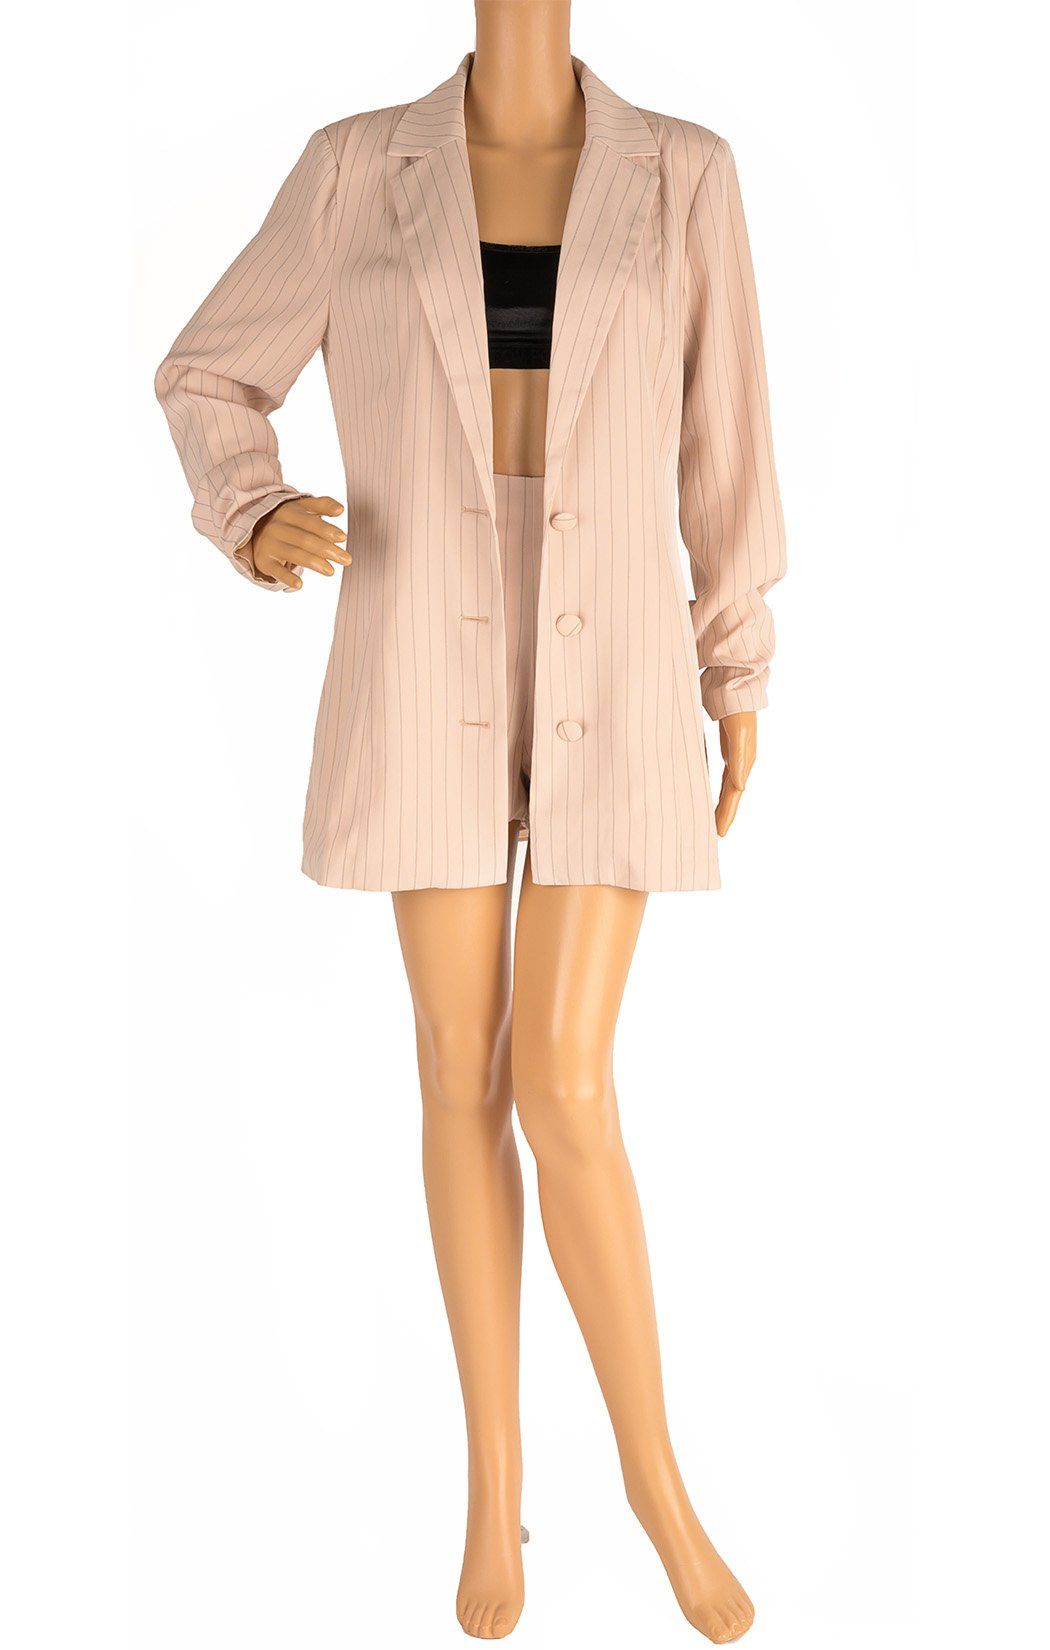 Second front view of TIGER MIST  Matching blazer and shorts